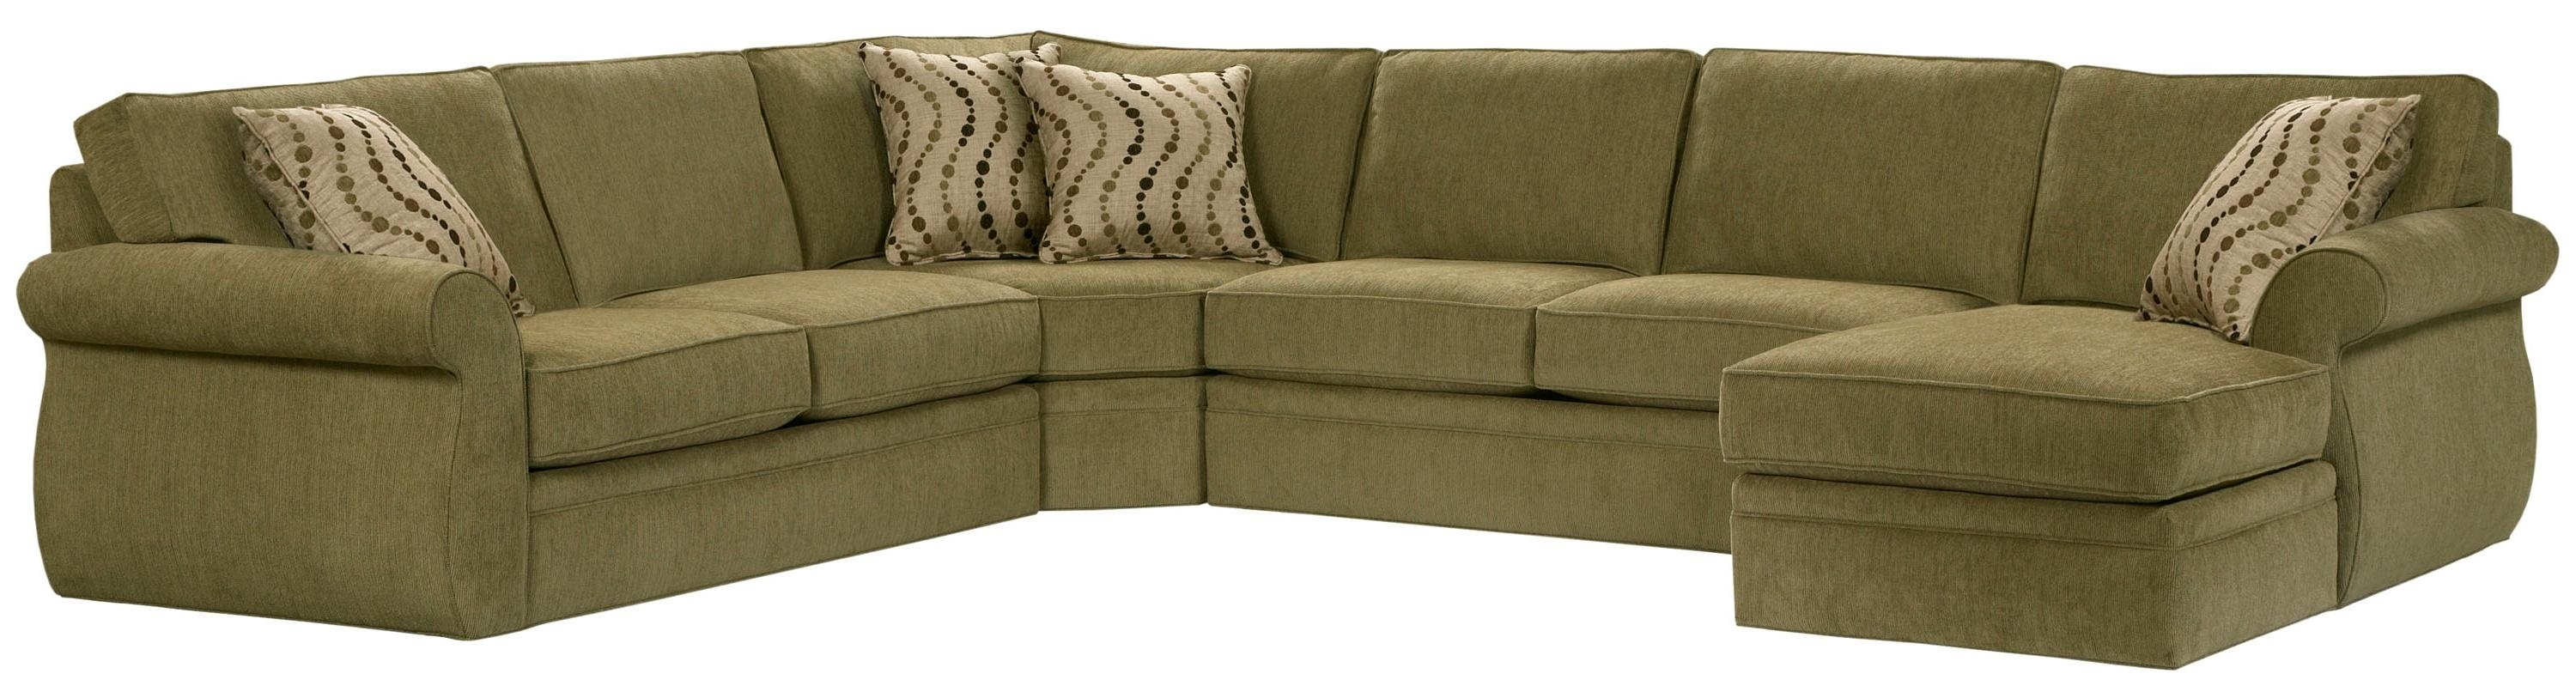 Broyhill Furniture Veronica Right Arm Facing Customizable Chaise throughout Sectional Sofas at Broyhill (Image 5 of 15)